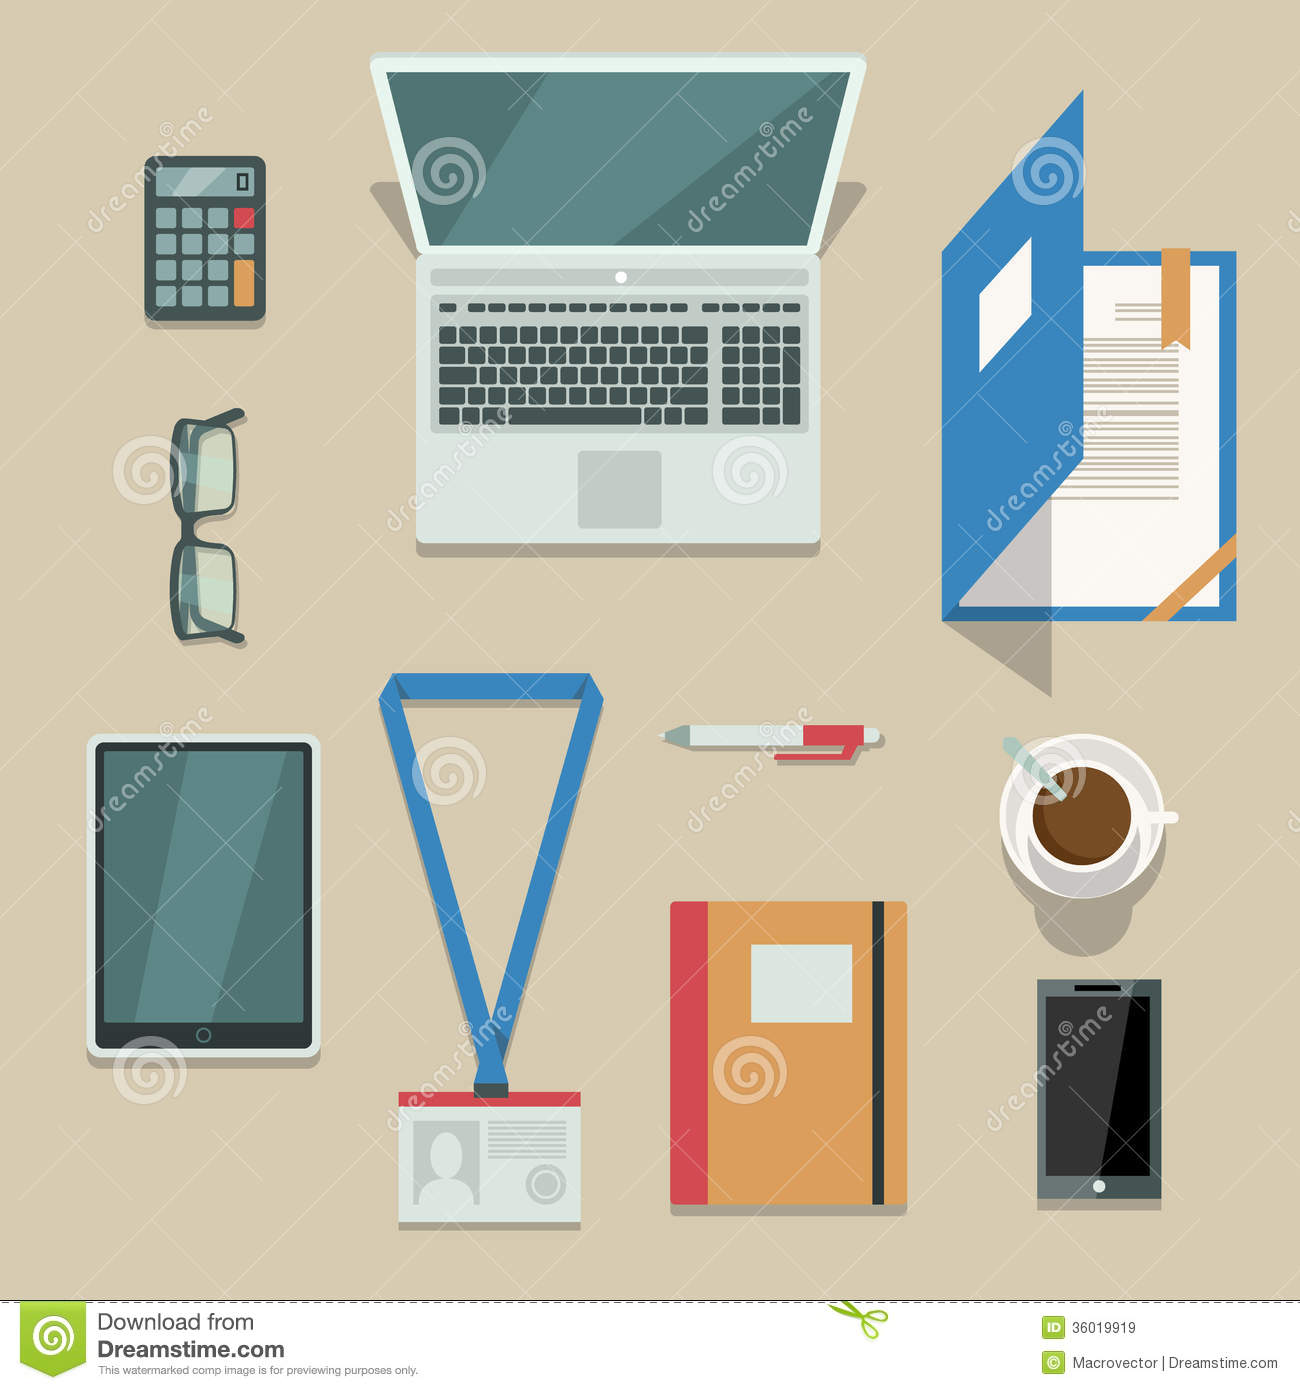 Office workplace with mobile devices and documents royalty free stock images image 36019919 - Office for mobile devices ...